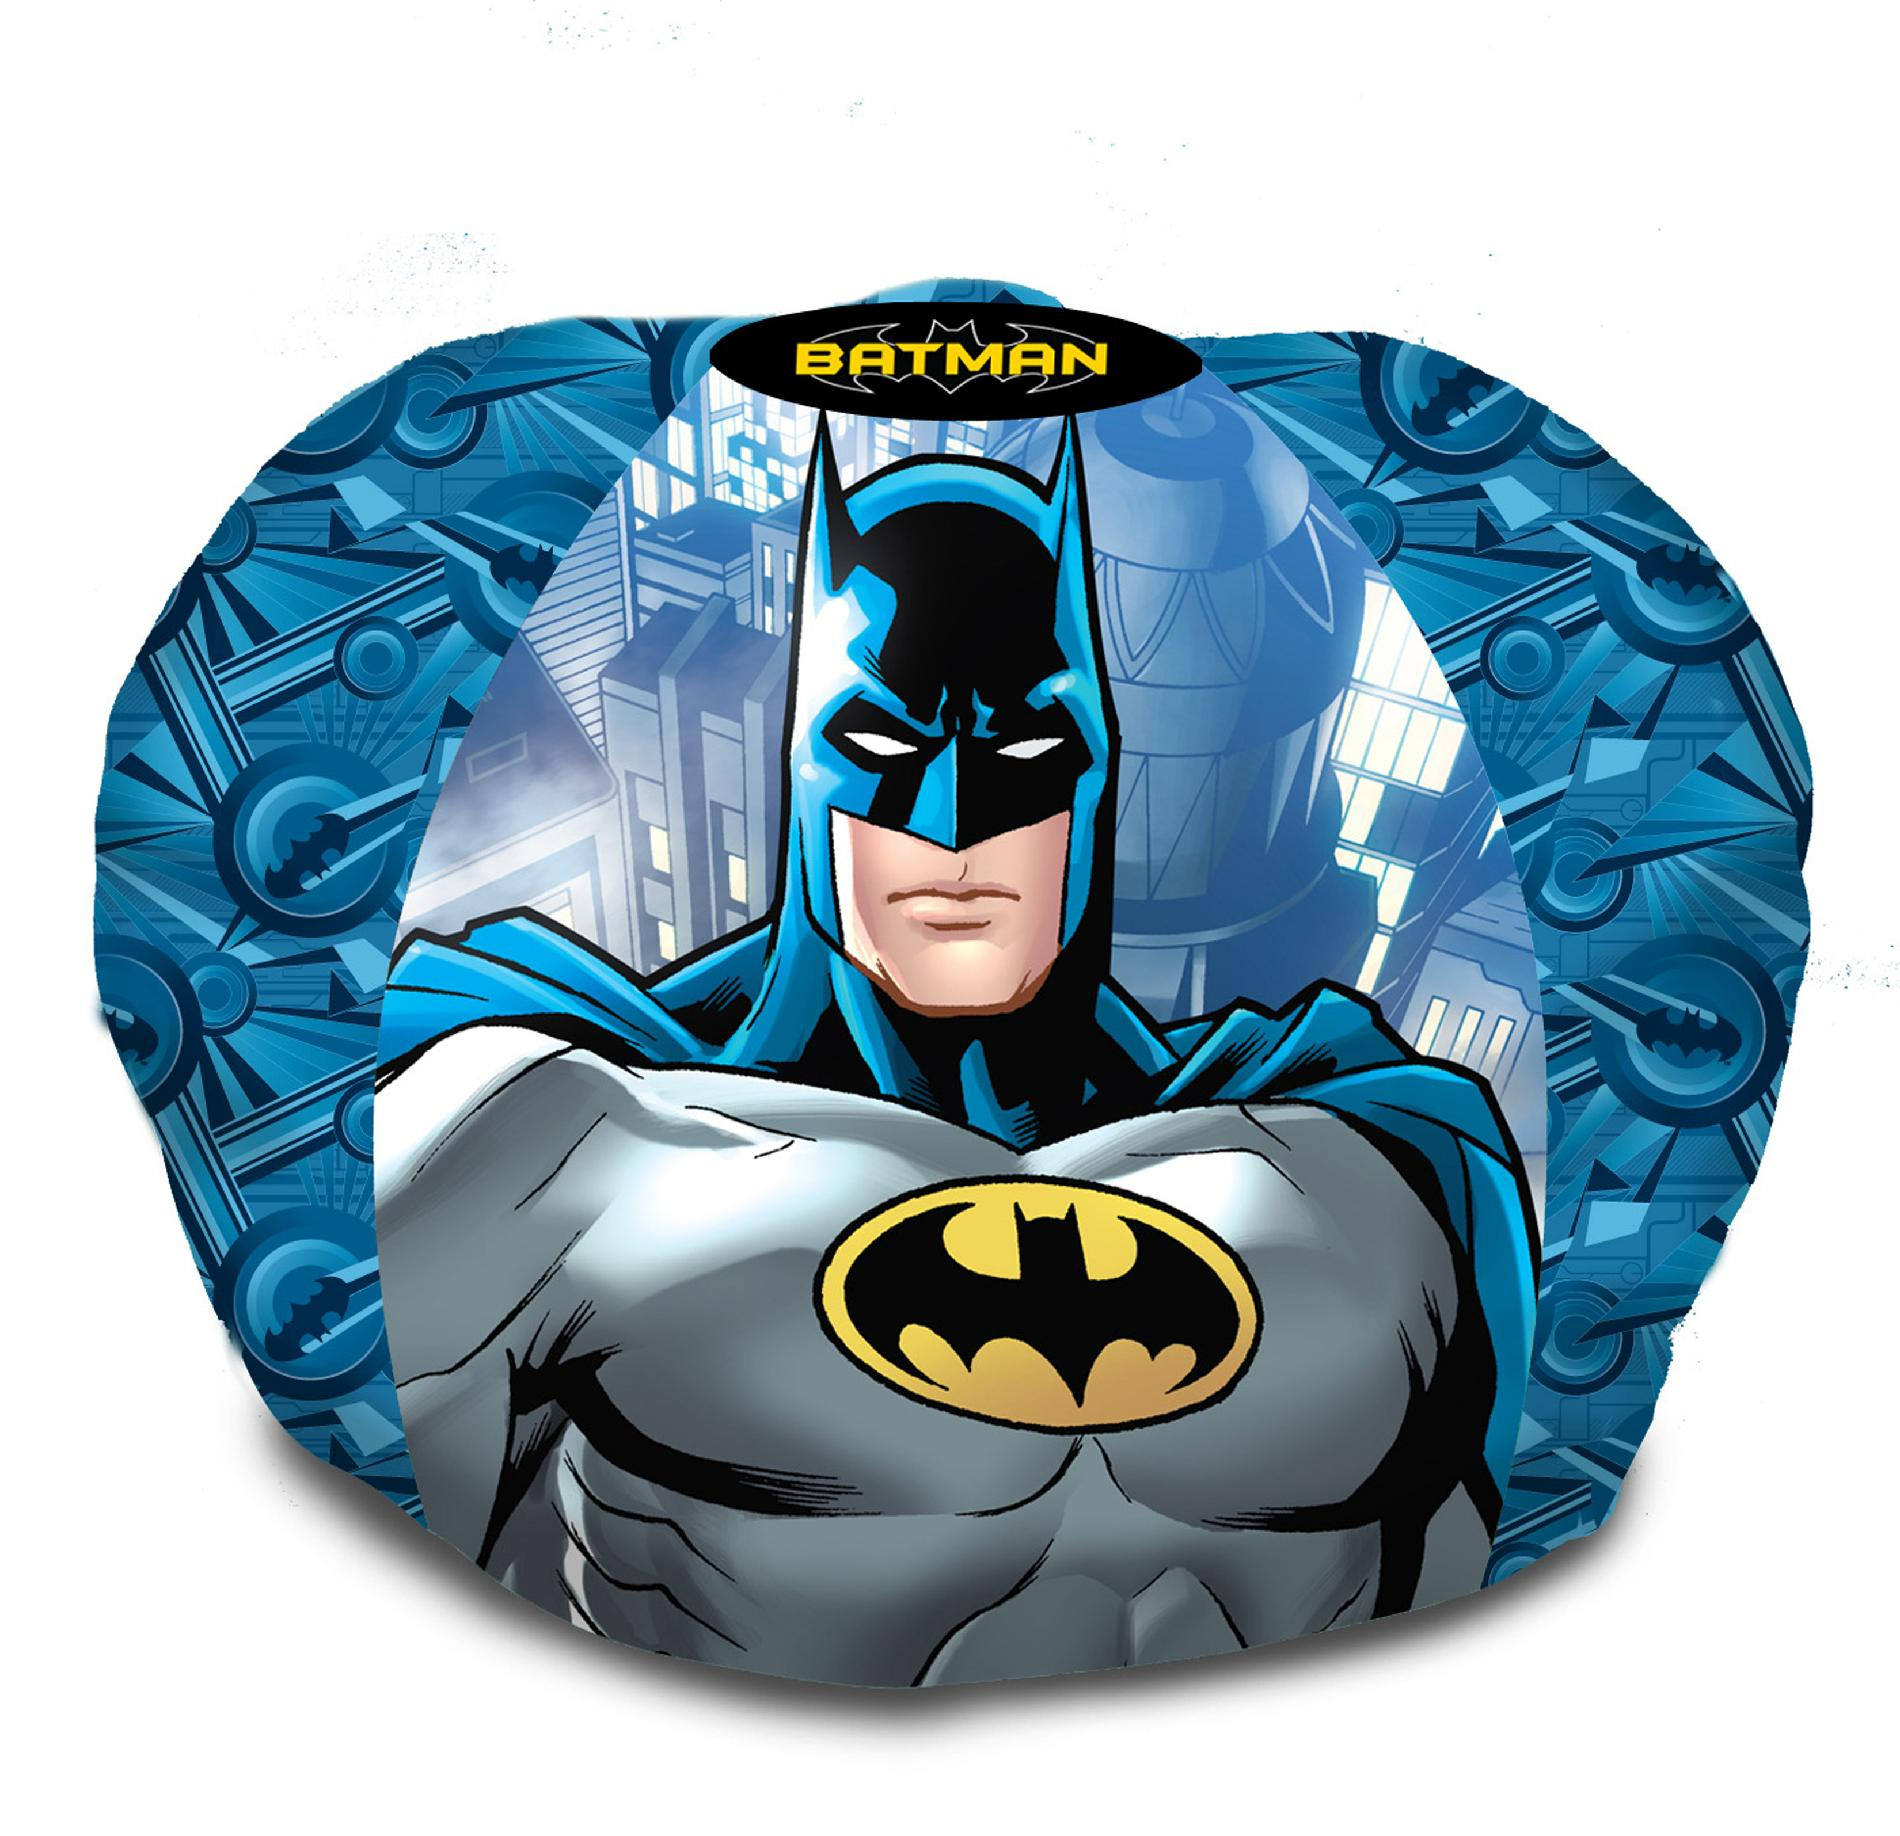 superhero bean bag chair reupholster a with leather batman toys decor and clothing